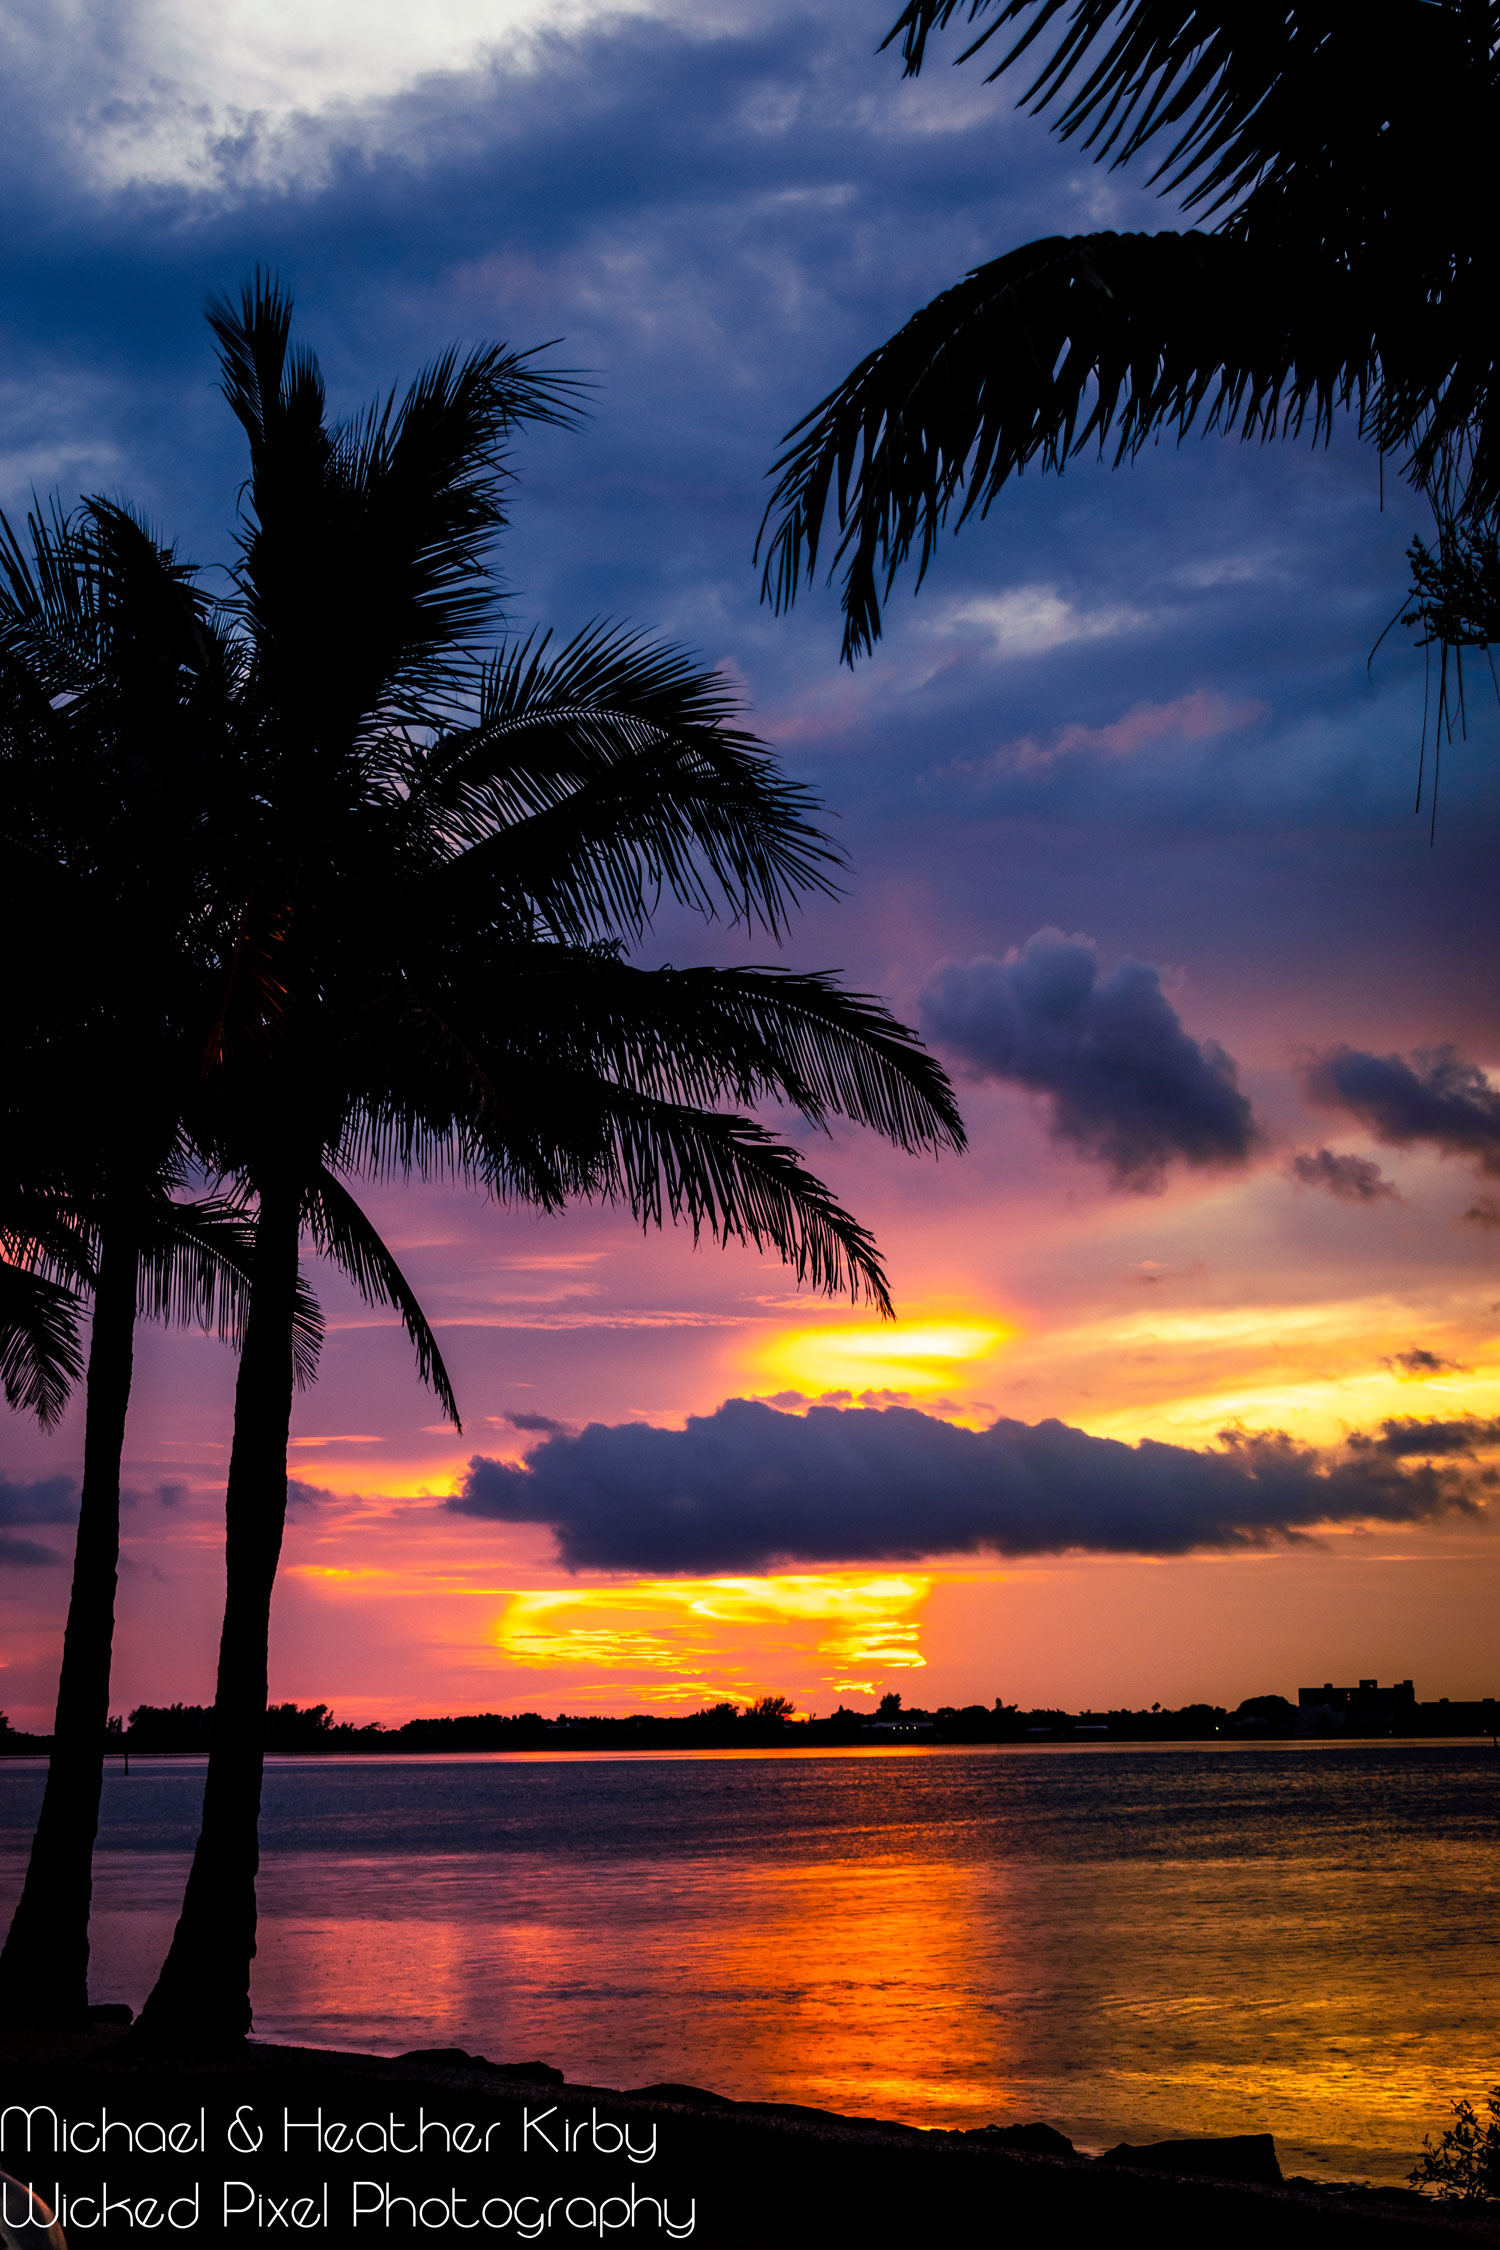 Sarasota-Bay-Palms-2.jpg